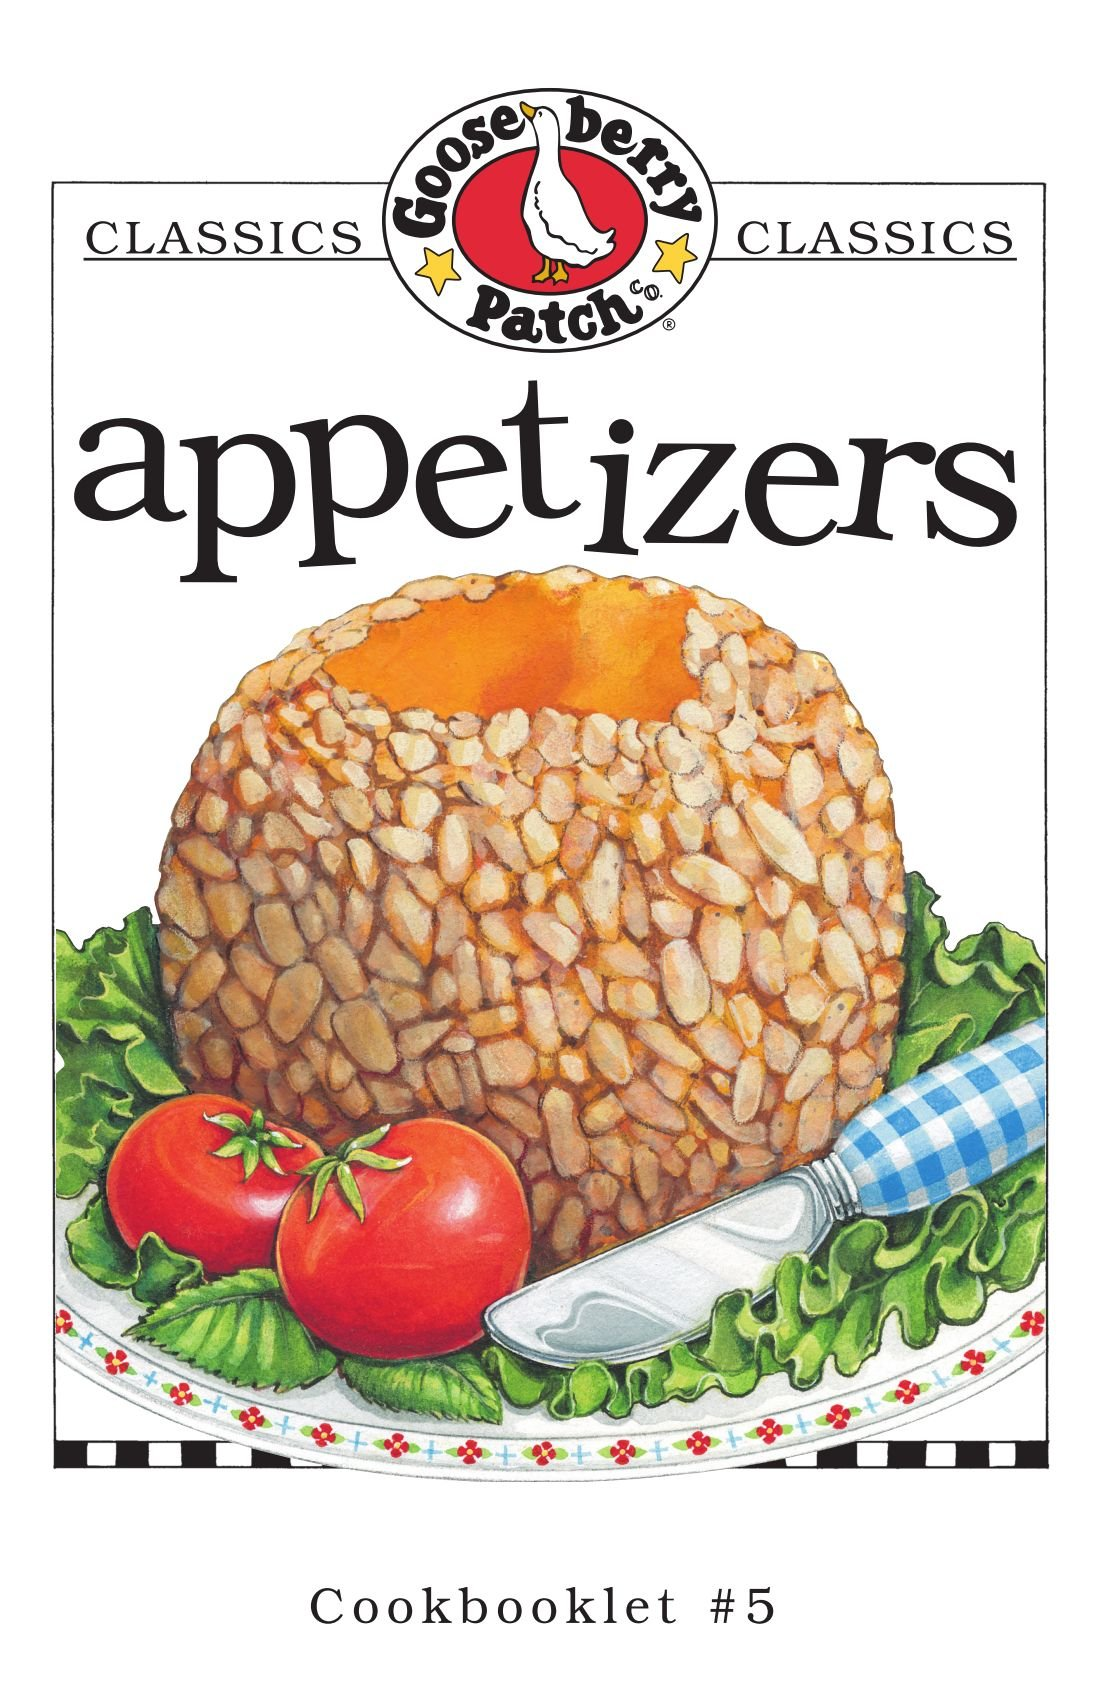 Appetizers (Gooseberry Patch Classic Cookbooklets, No. 5) ebook